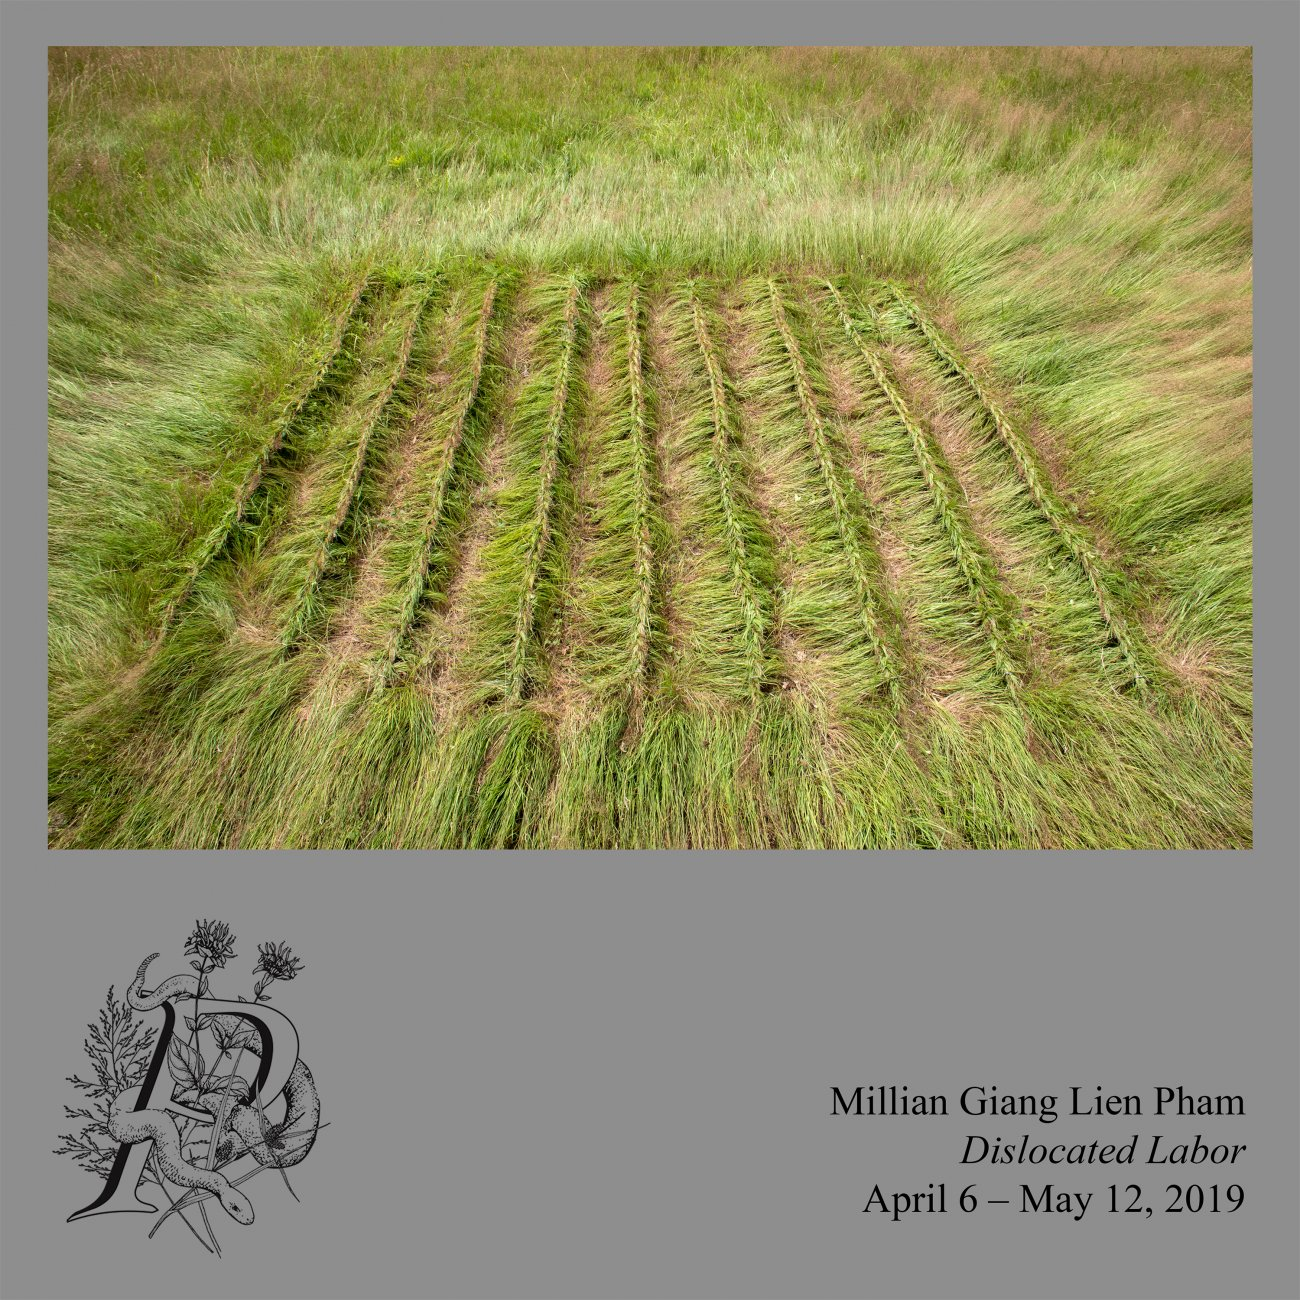 Image of a field of grass, the grass has been braided in vertical rows, creating a square.